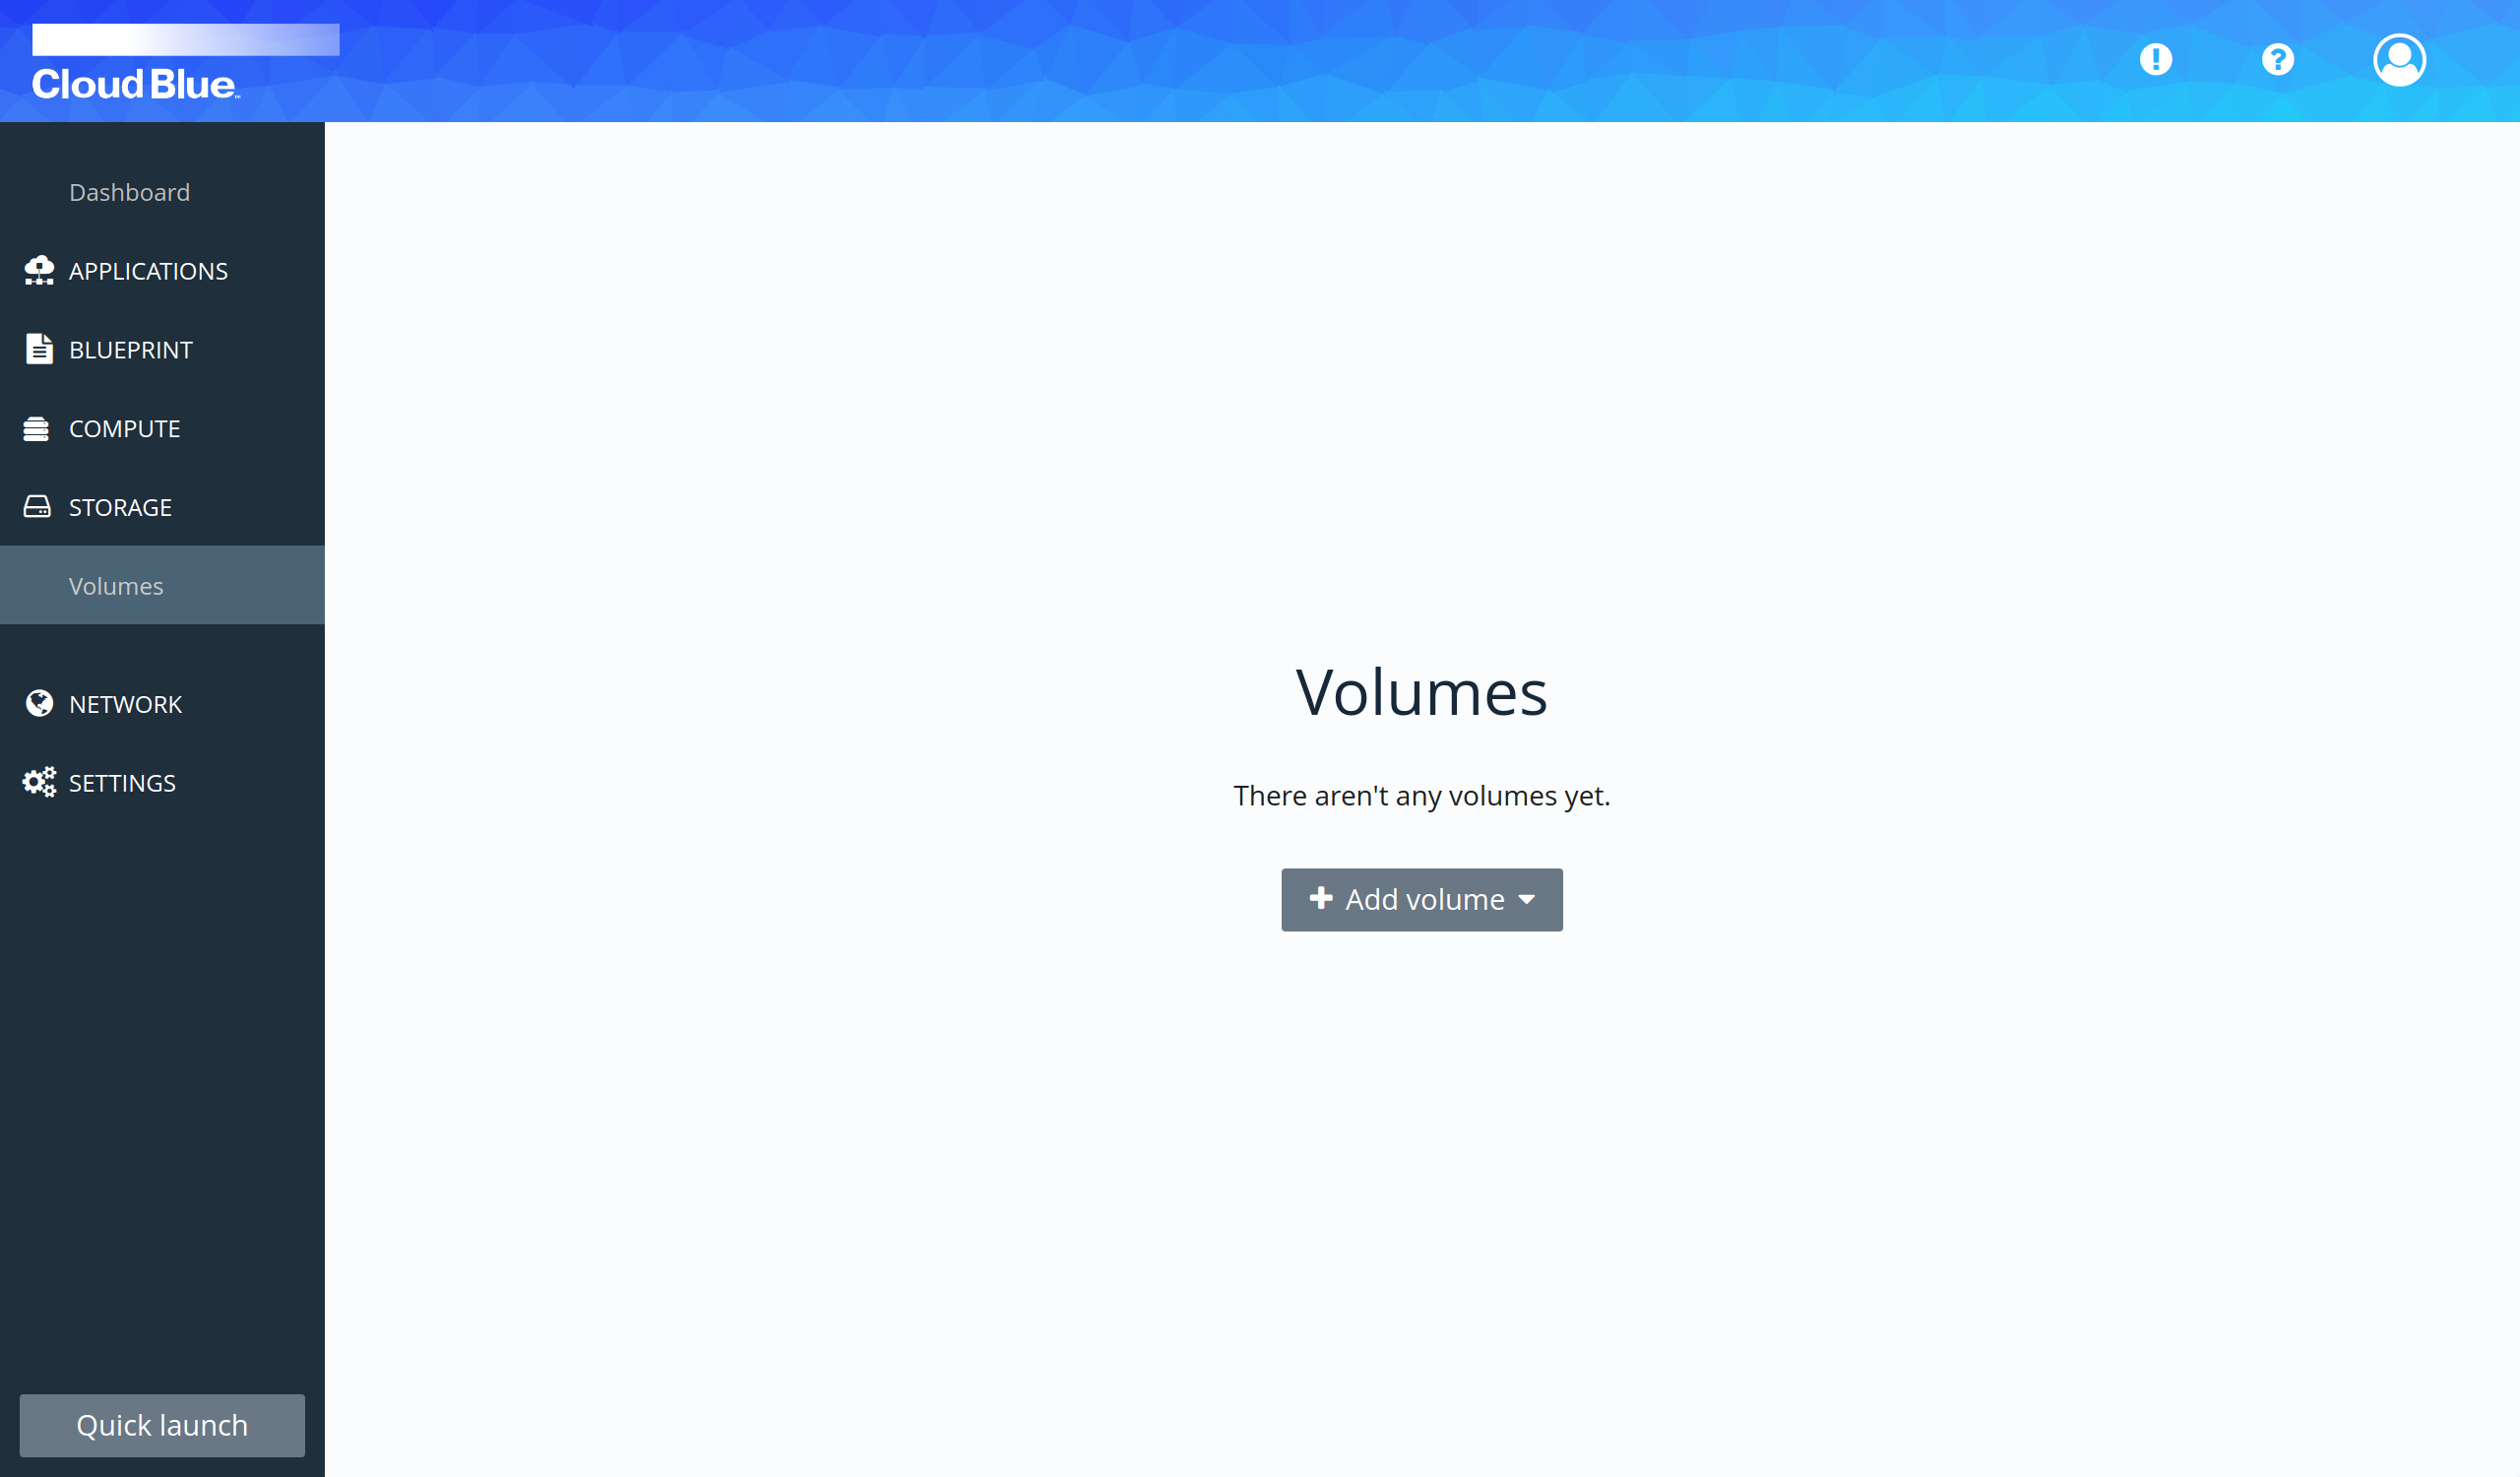 Volumes section view